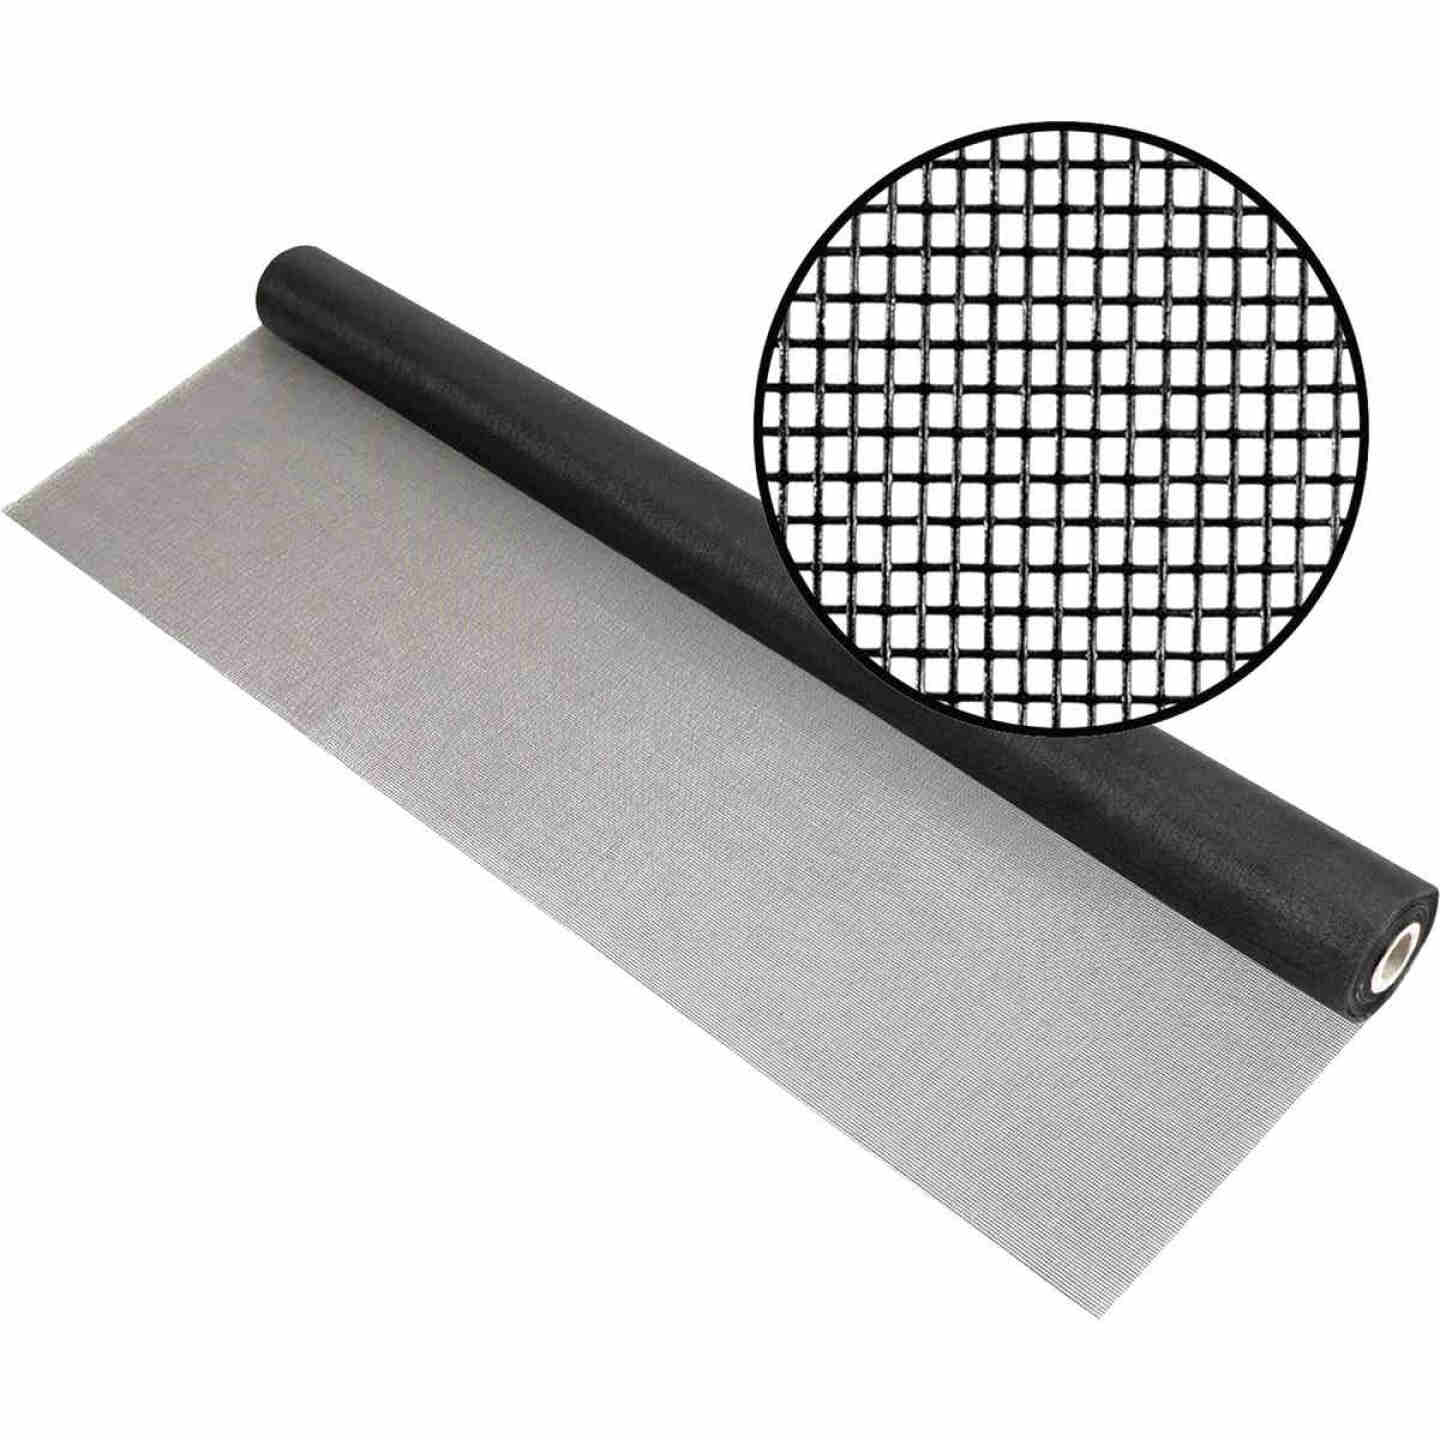 Phifer 30 In. x 100 Ft. Charcoal Fiberglass Mesh Screen Cloth Image 1